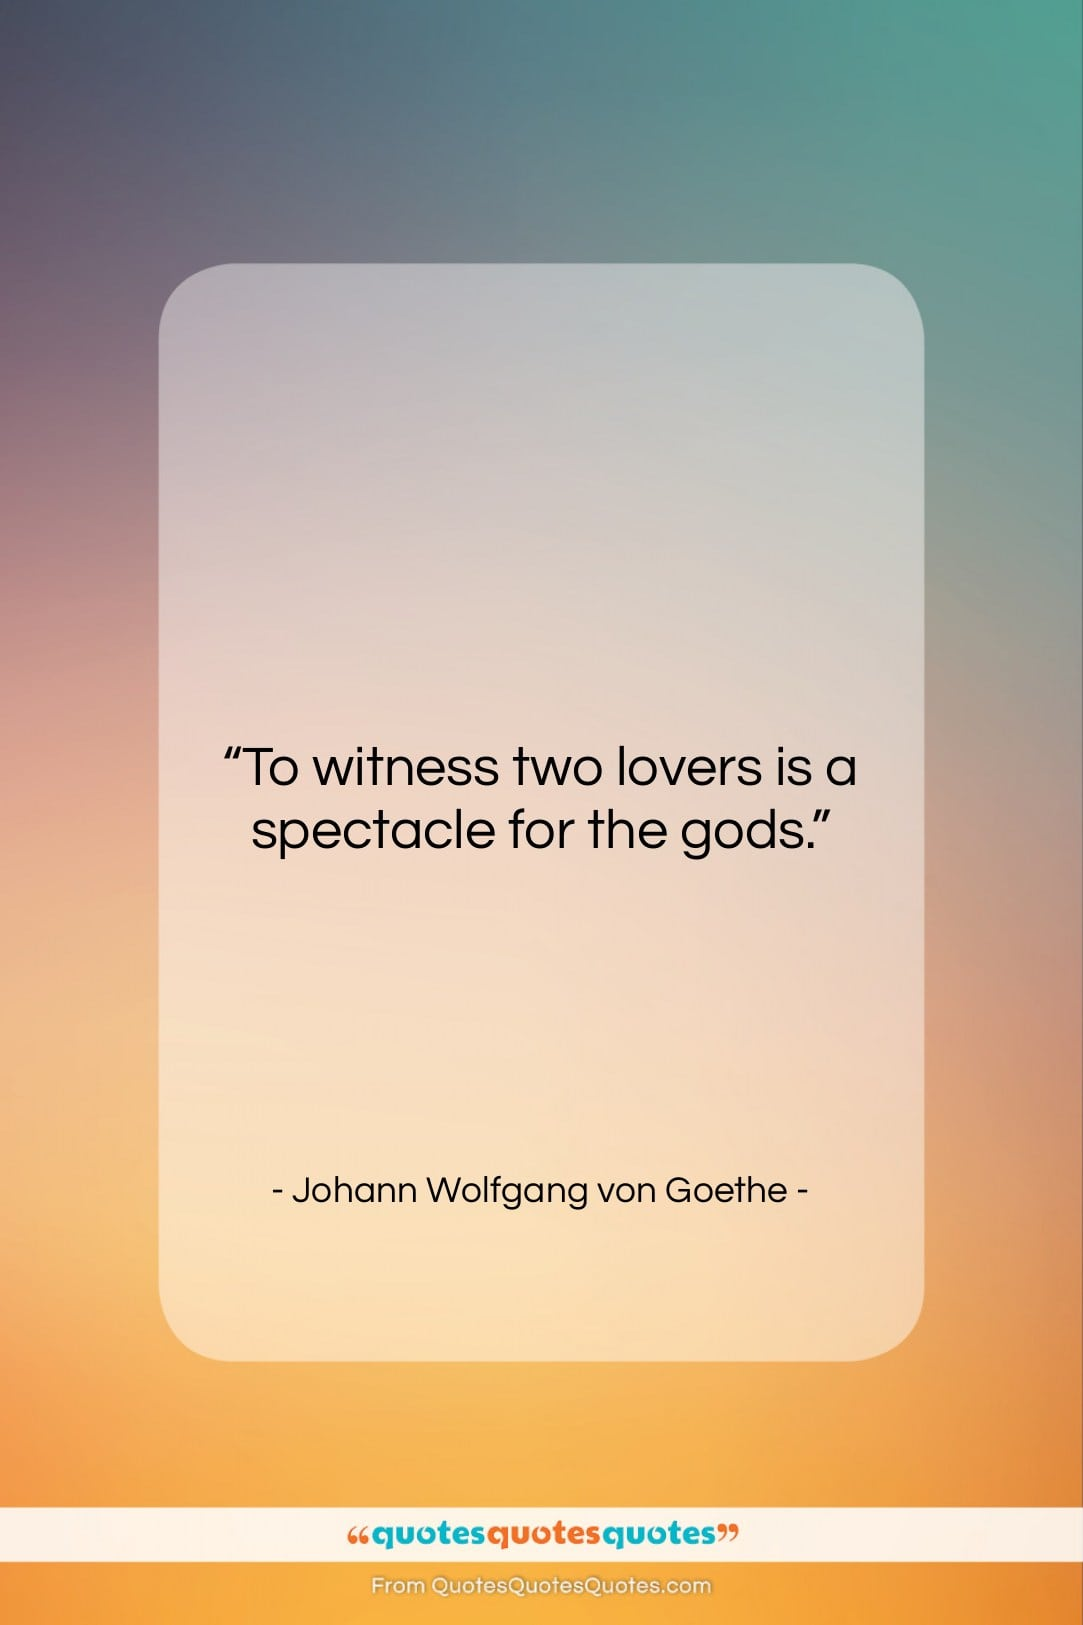 """Johann Wolfgang von Goethe quote: """"To witness two lovers is a spectacle…""""- at QuotesQuotesQuotes.com"""